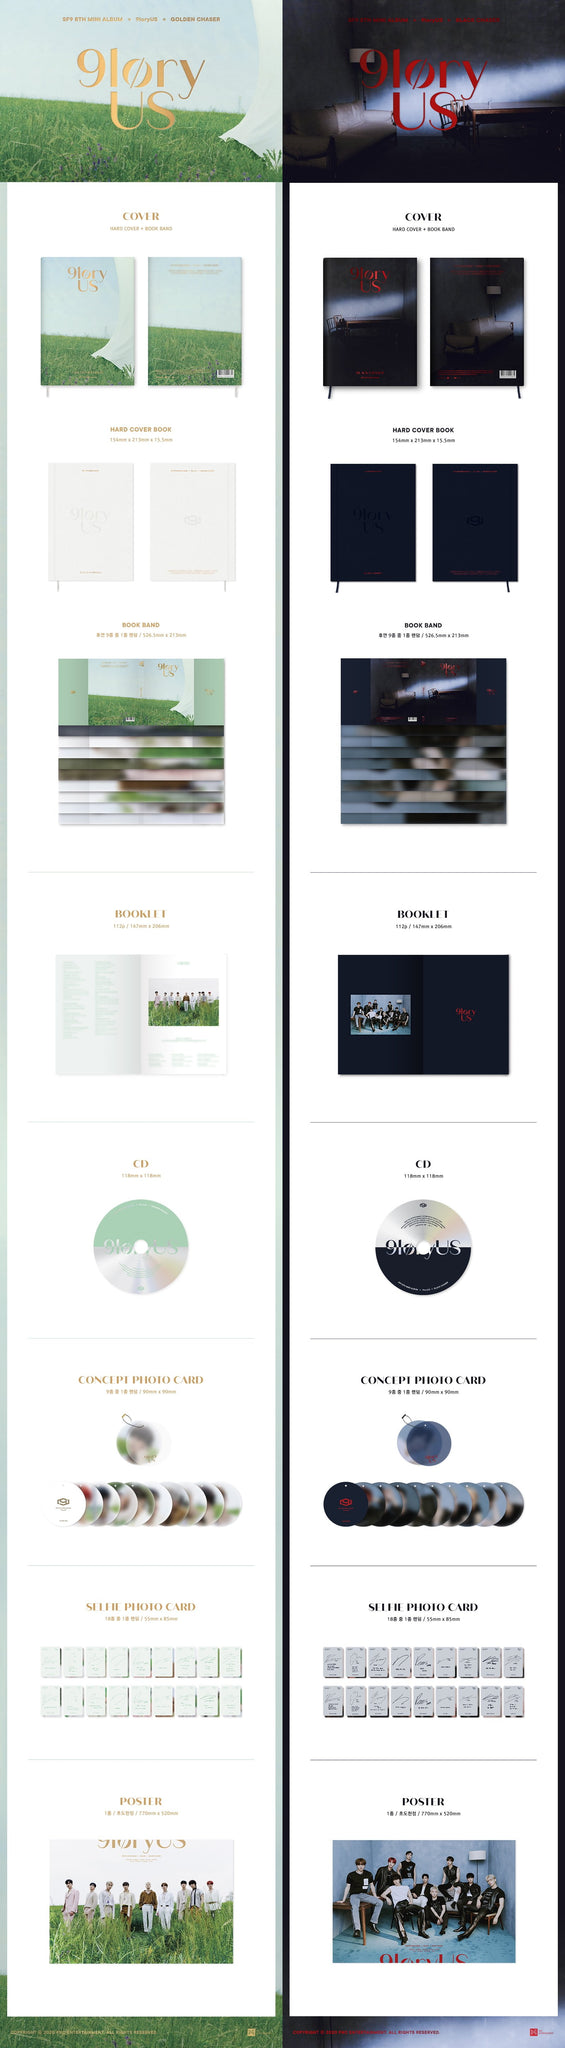 SF9 8th Mini Album - 9LORYUS (SET Ver.) 2CD + 2Poster